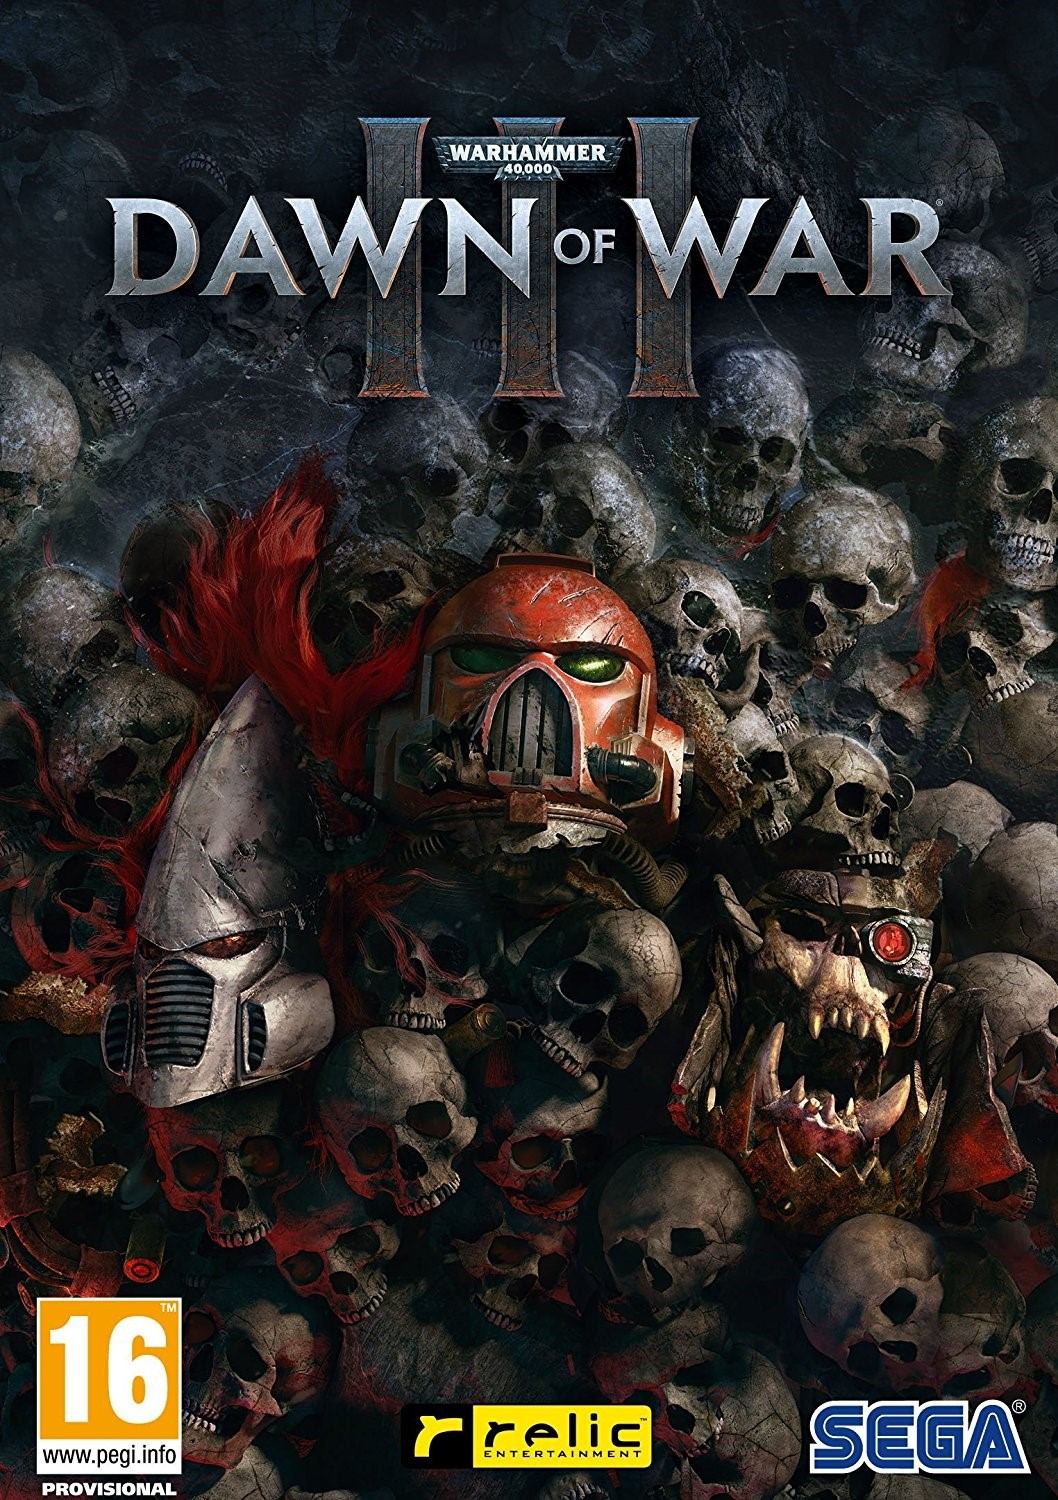 Warhammer 40k:Dawn of War III / 3 (Steam KEY)